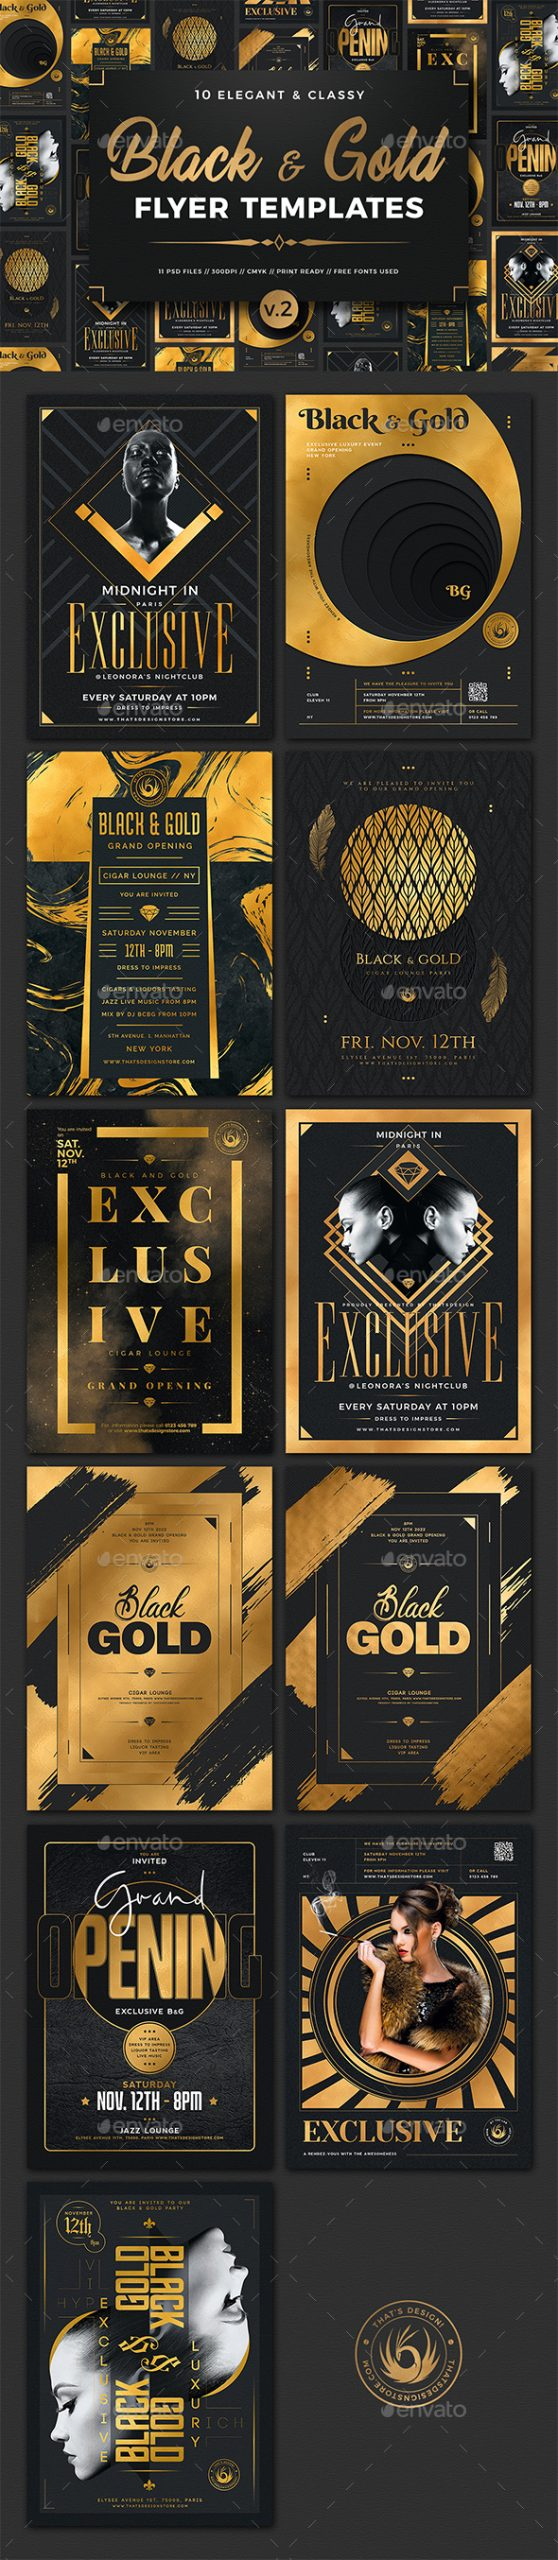 Flyers PSD – 10 Unlit and Gold Flyers Bundle V2 – Download